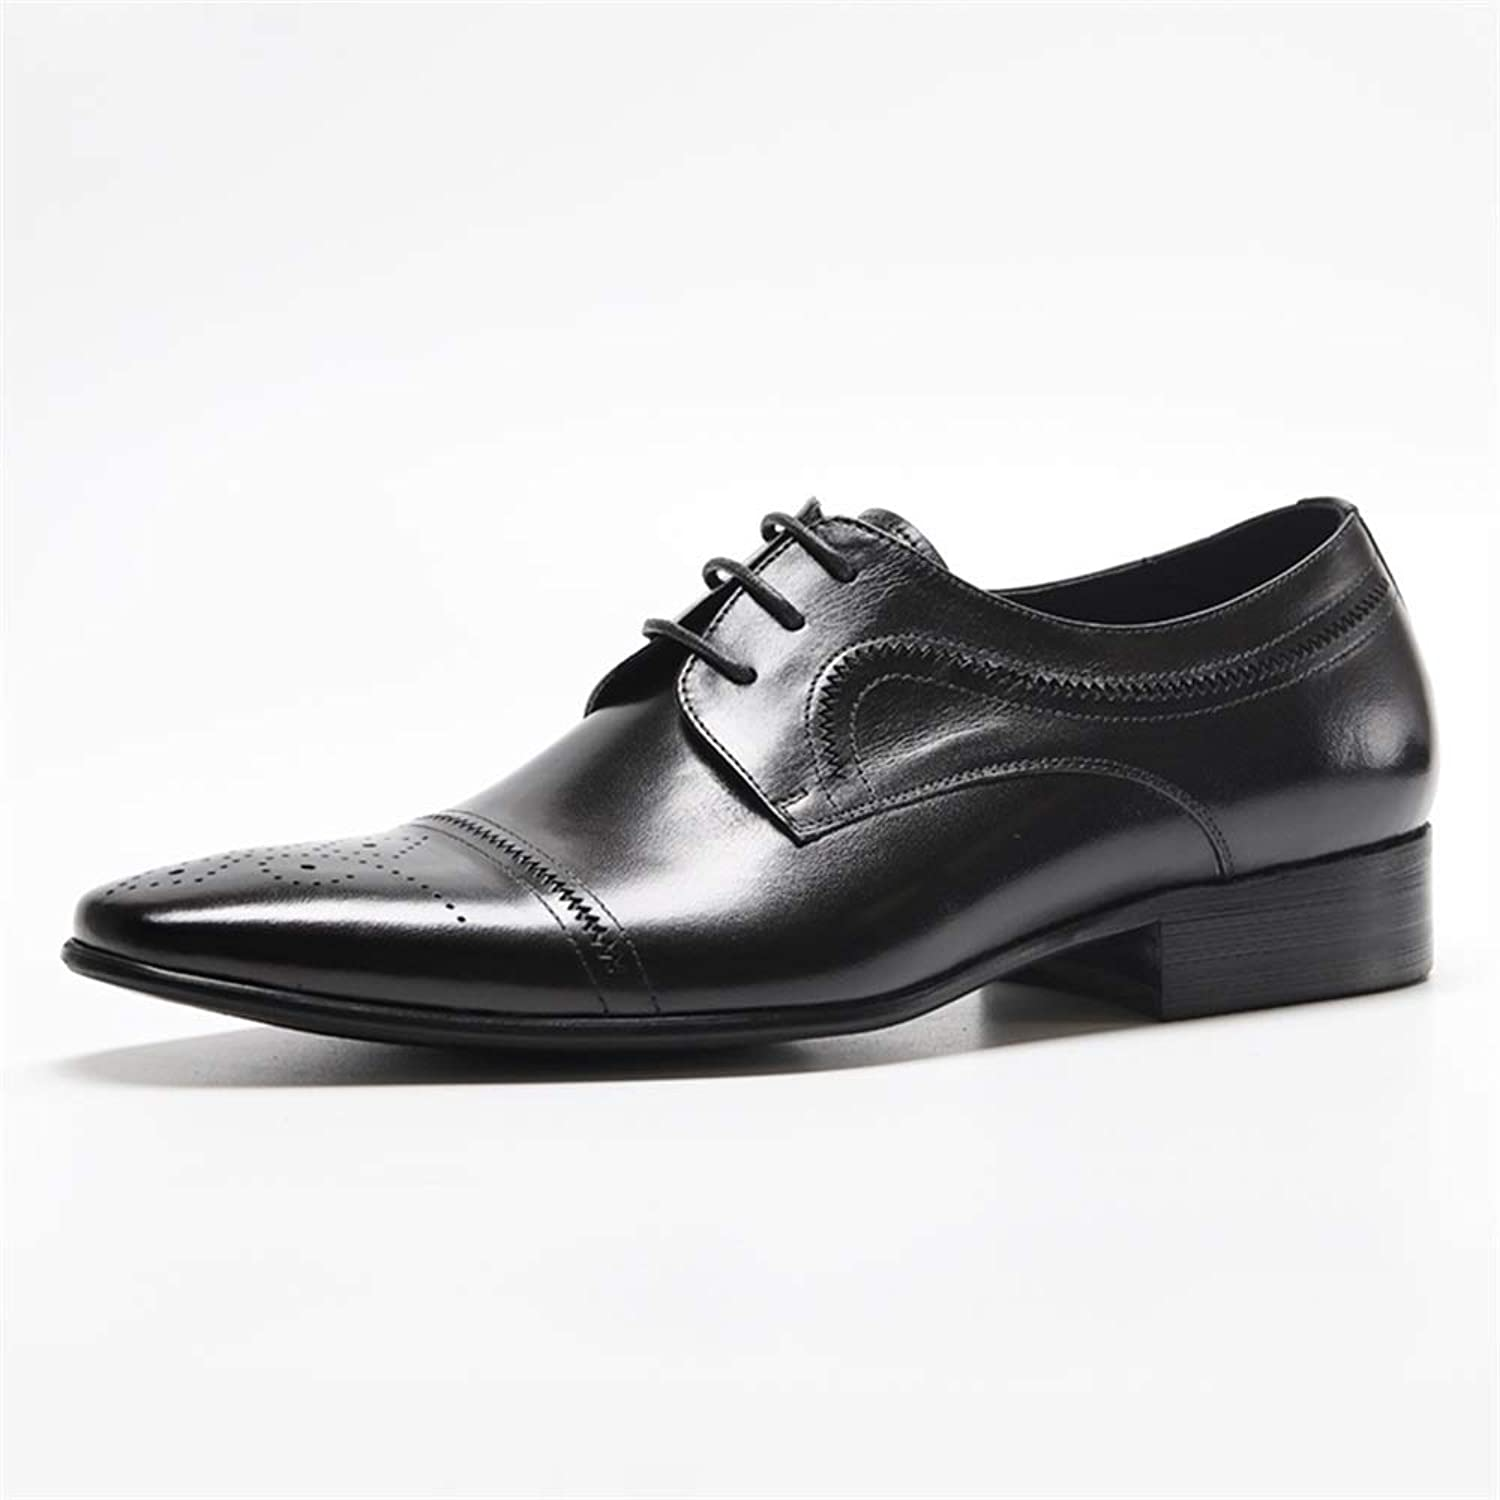 Men's Business Leather shoes Men Comfortable Classic Modern Dress shoes Men Pointed Lace-up shoes